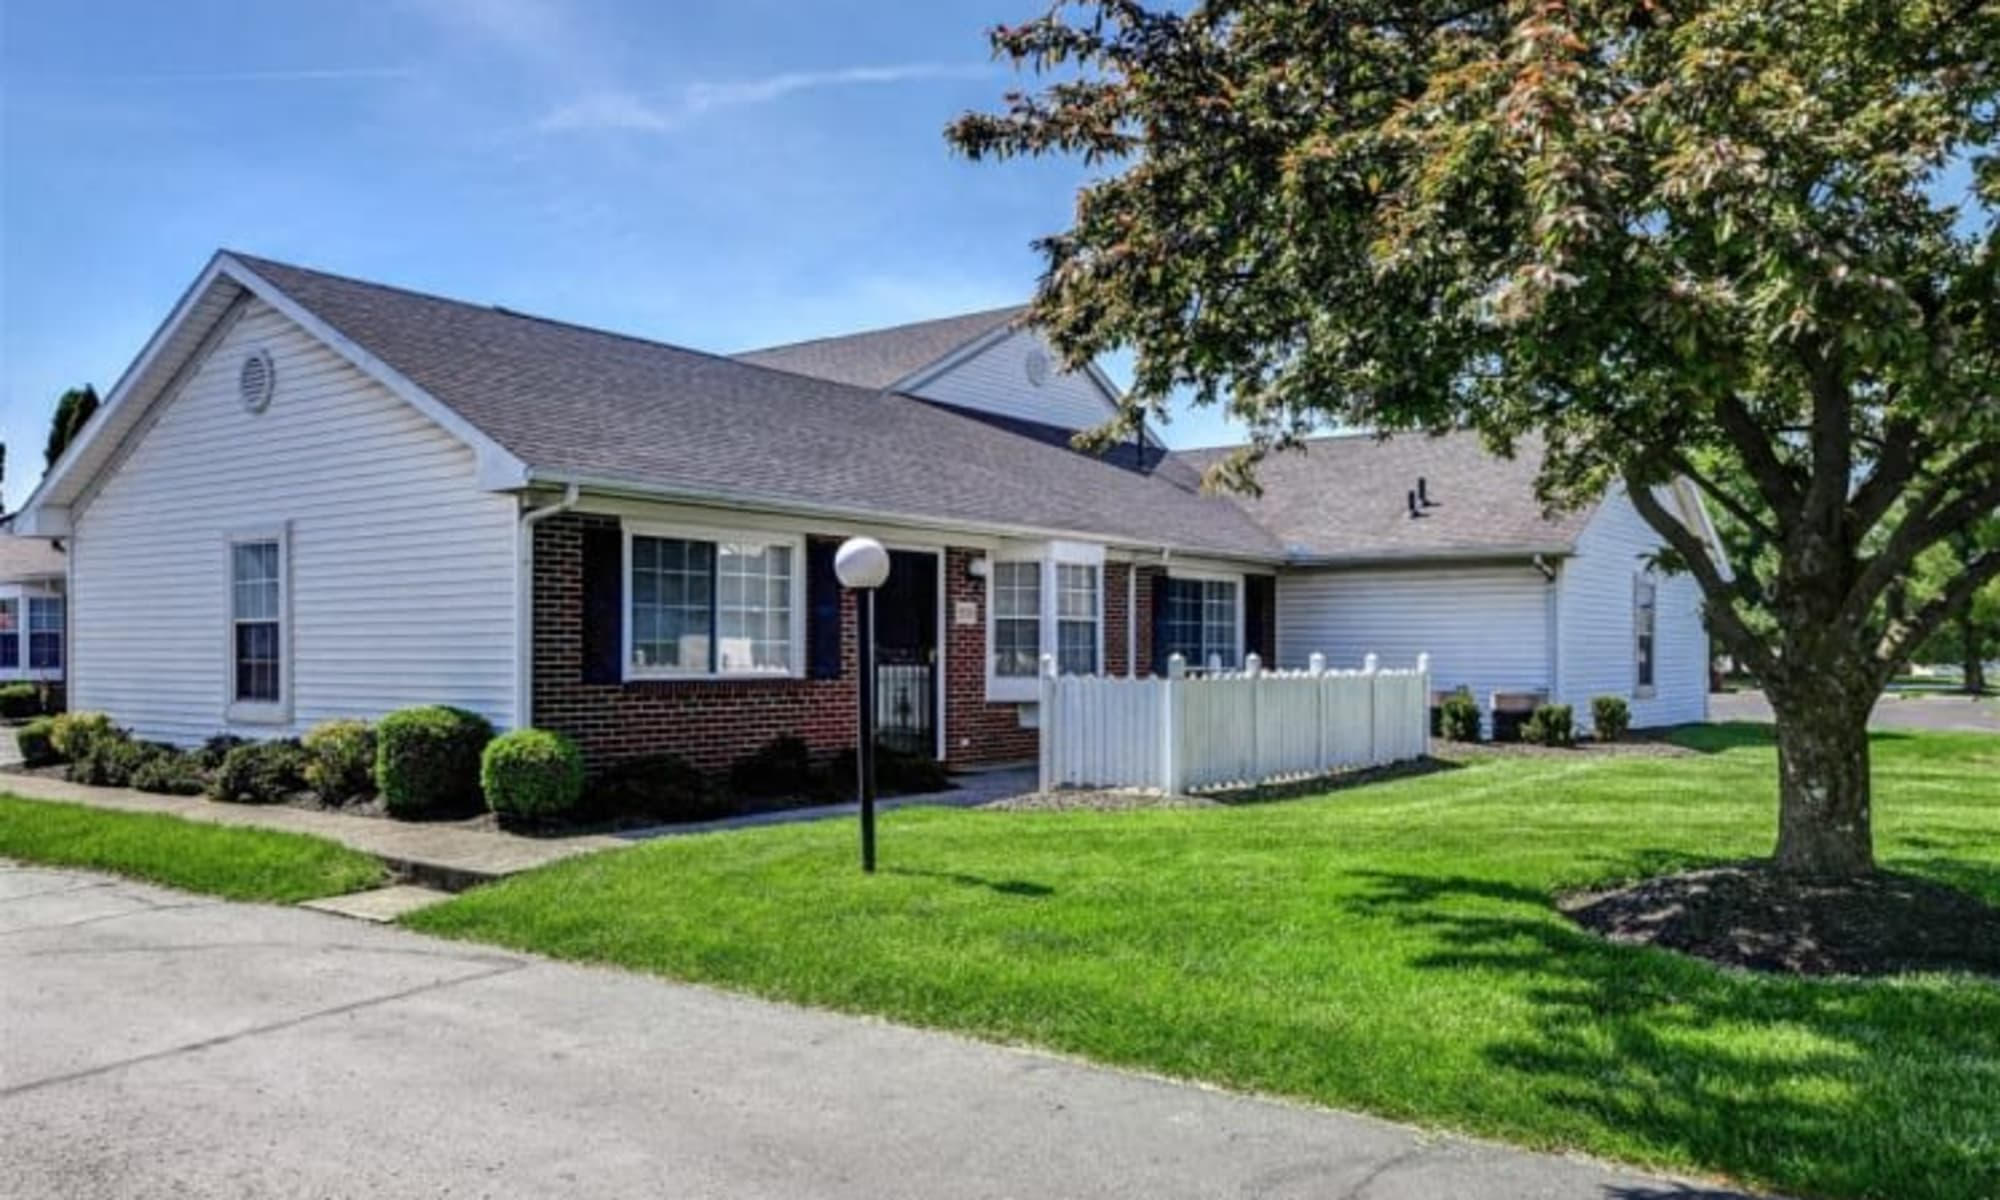 Scenic home ready for move in at Waterford Harbour in Groveport, OH